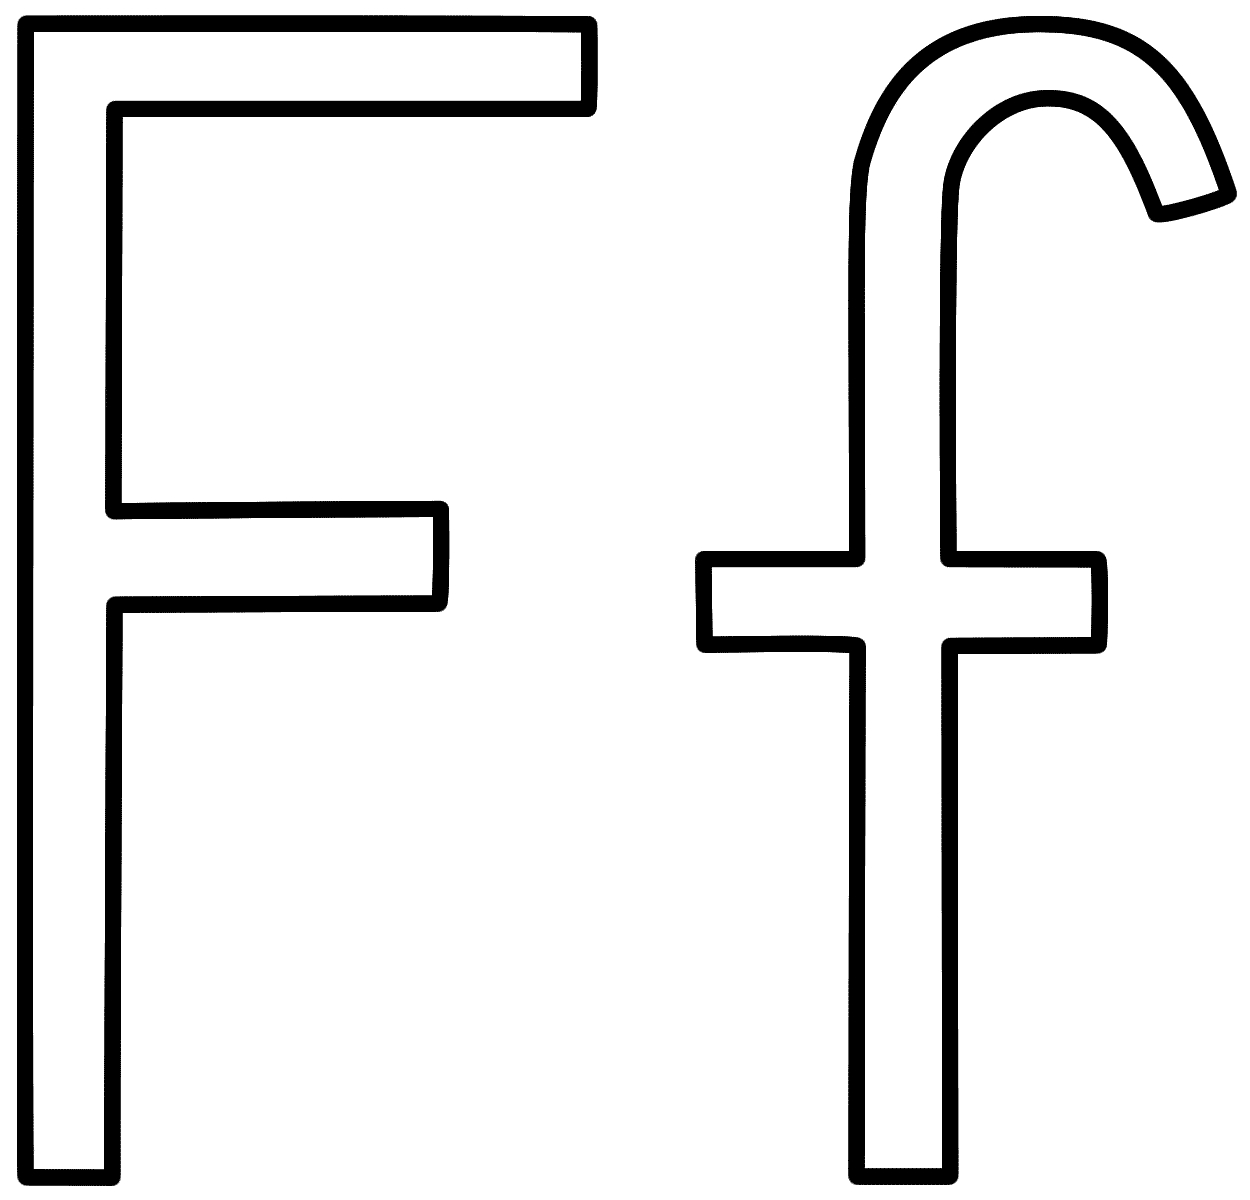 Letter f coloring page letter f